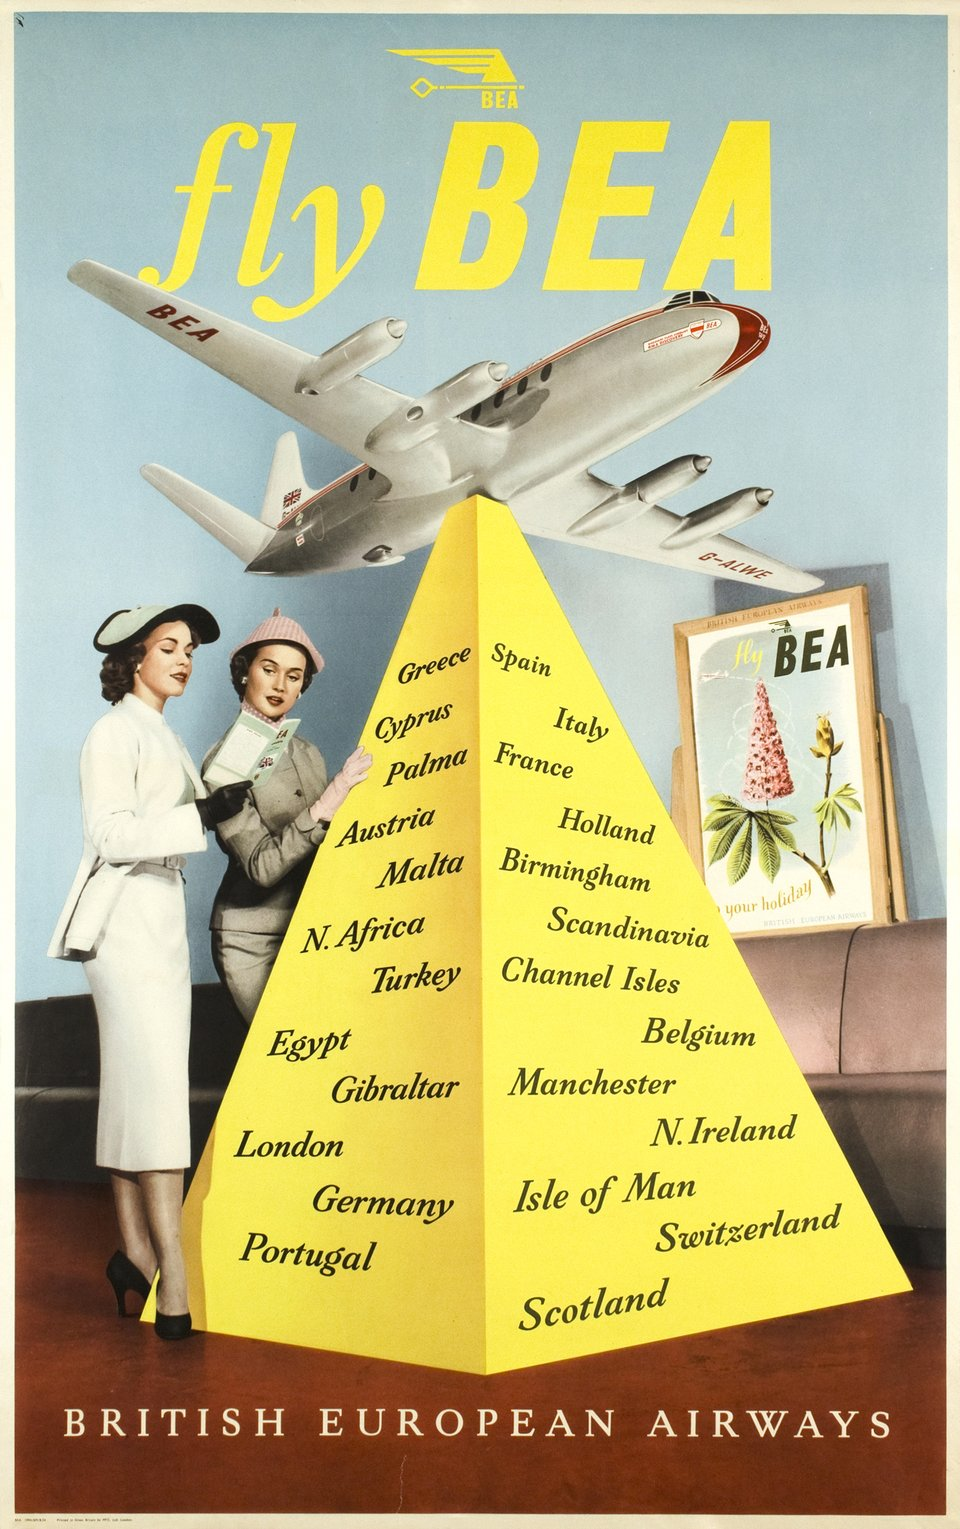 BEA - Fly BEA, British European Airways – Affiche ancienne – ANONYMOUS – 1954